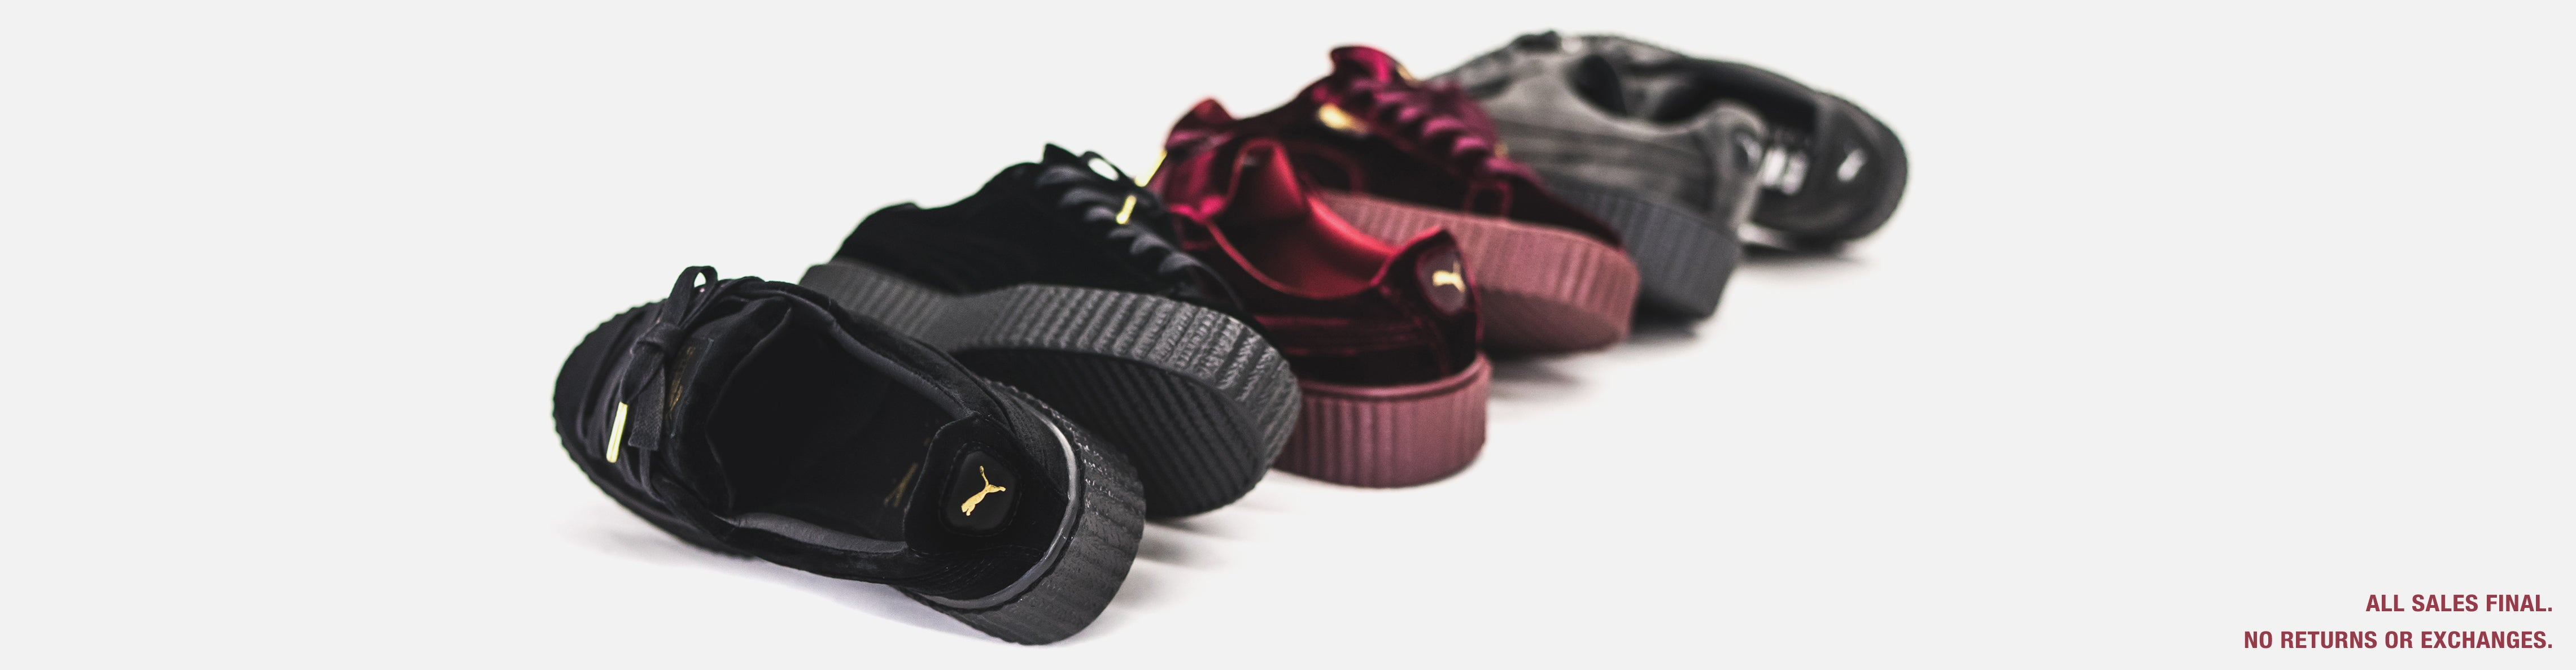 Fenty Puma by Rihanna – Velvet Collection [December 2016]